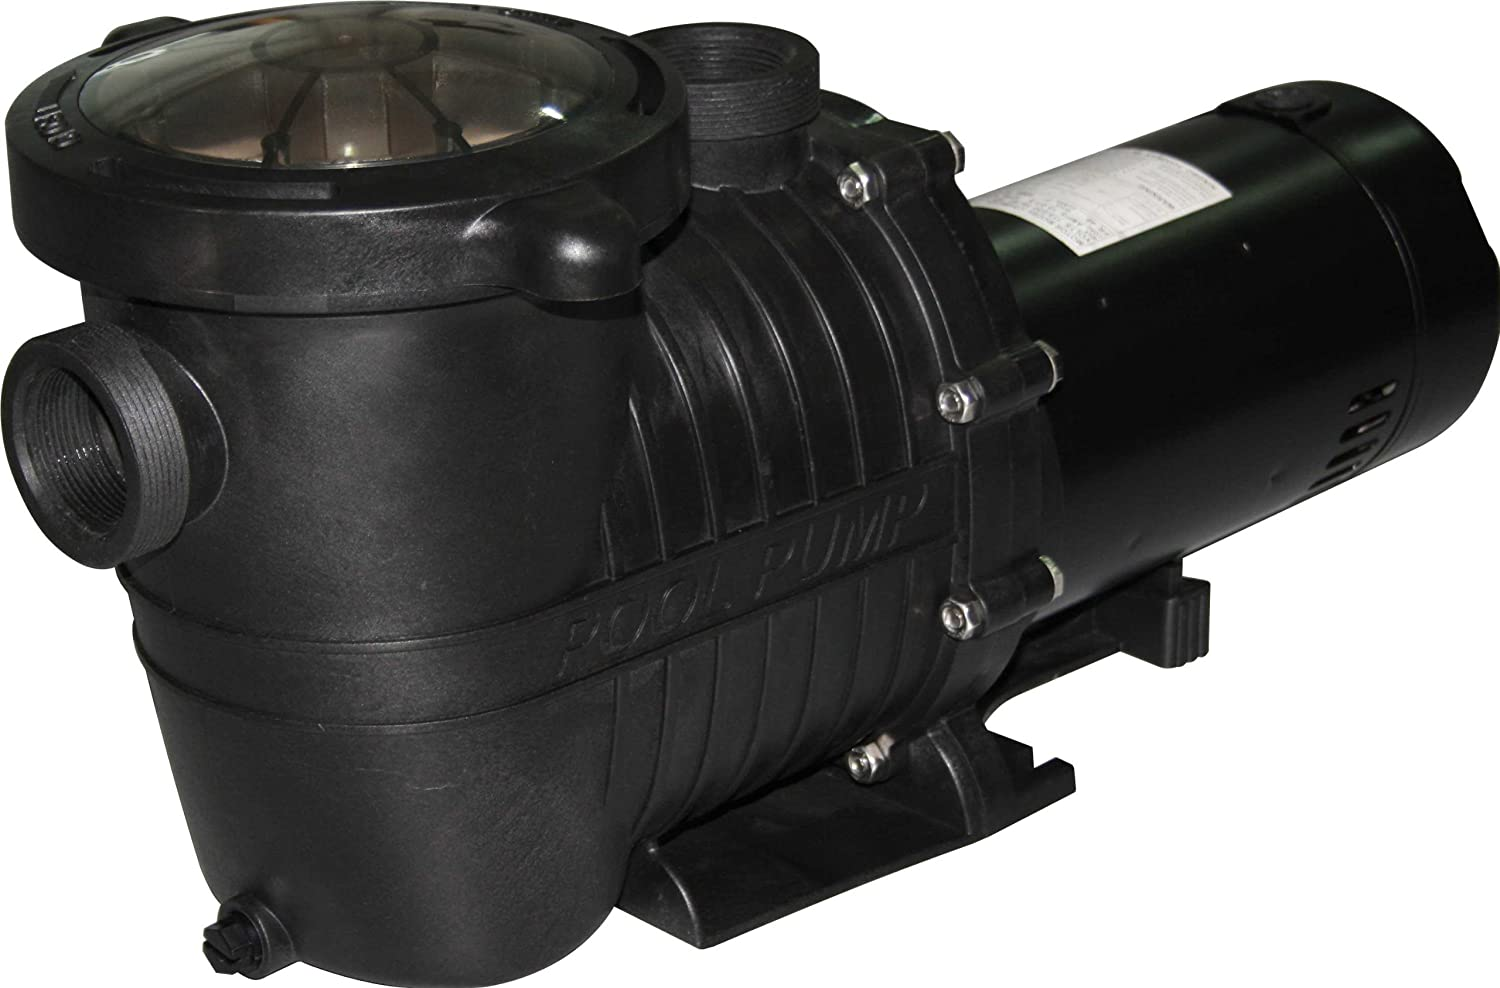 High Performance Mail order cheap Swimming Pool 1.5 HP-230V In-Ground Pump Ranking TOP15